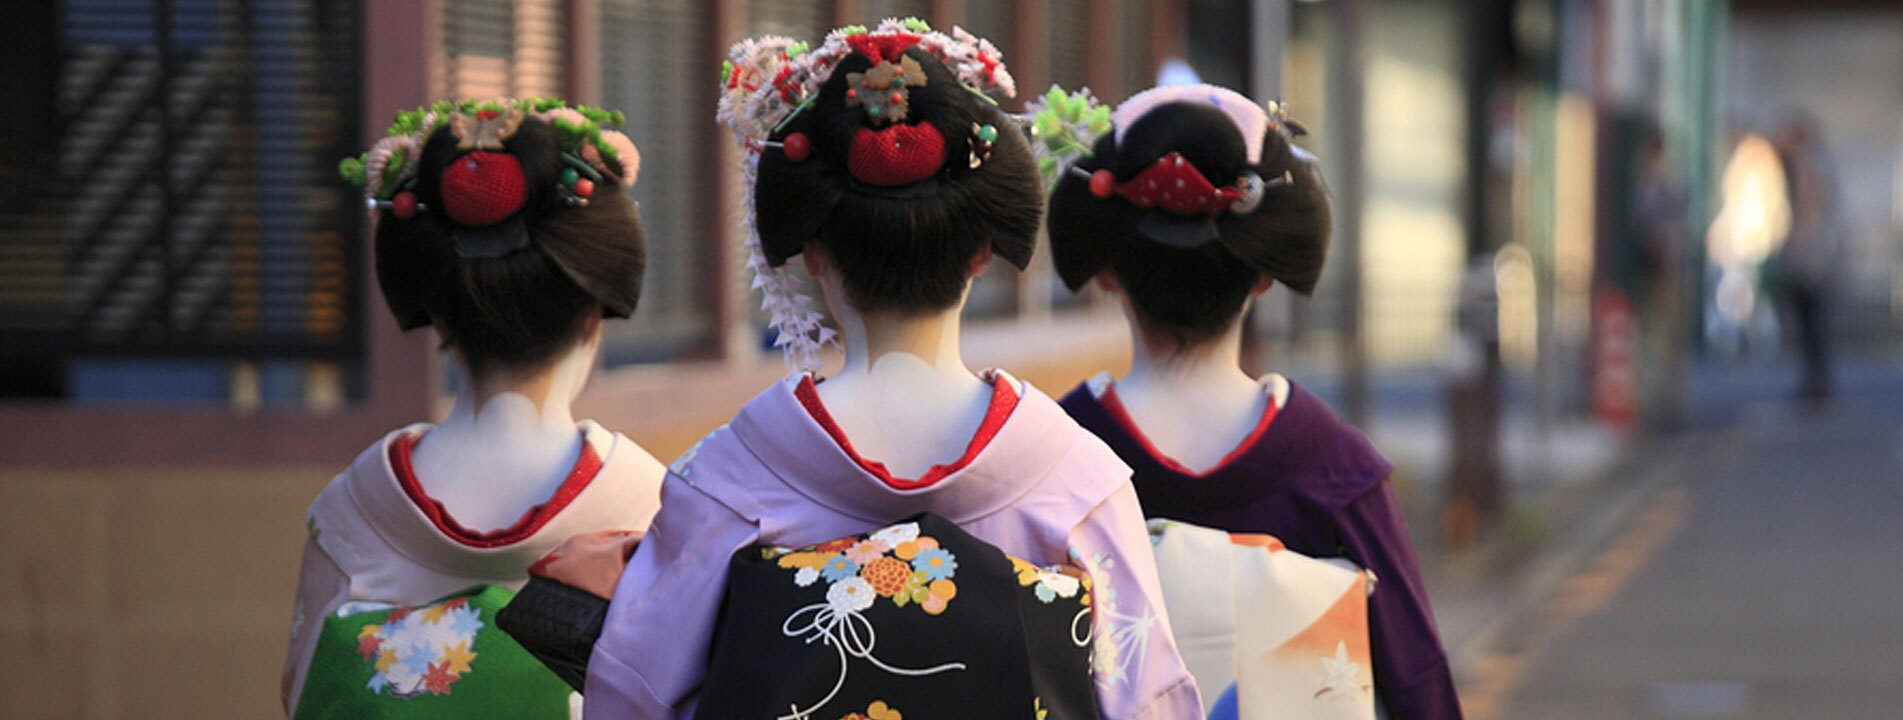 Geisha in traditional costume